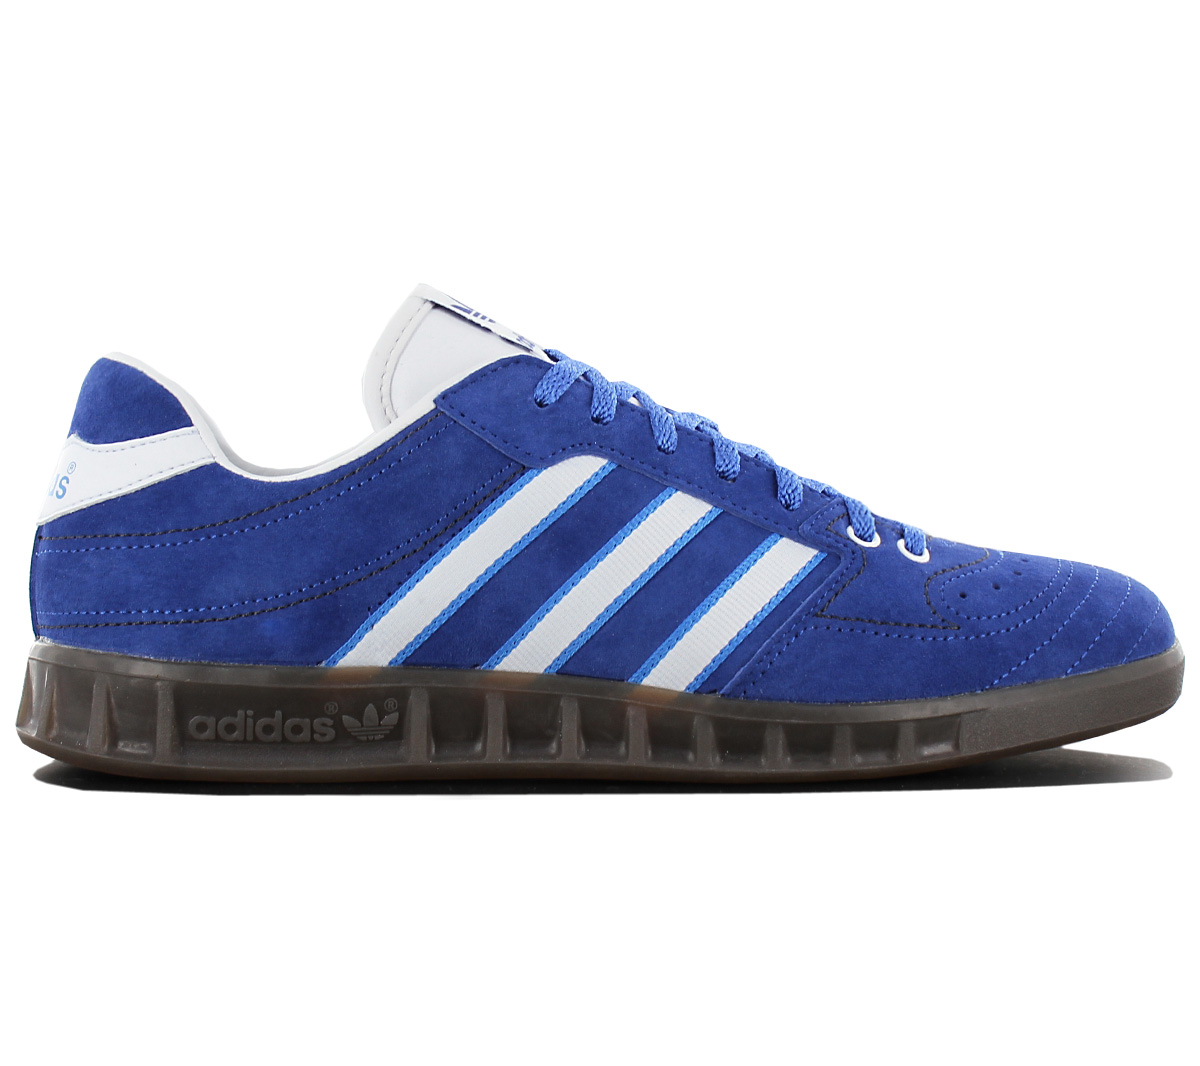 f8927949277 Adidas Originals Handball Kreft Spzl Special Mens Sneakers Leather ...